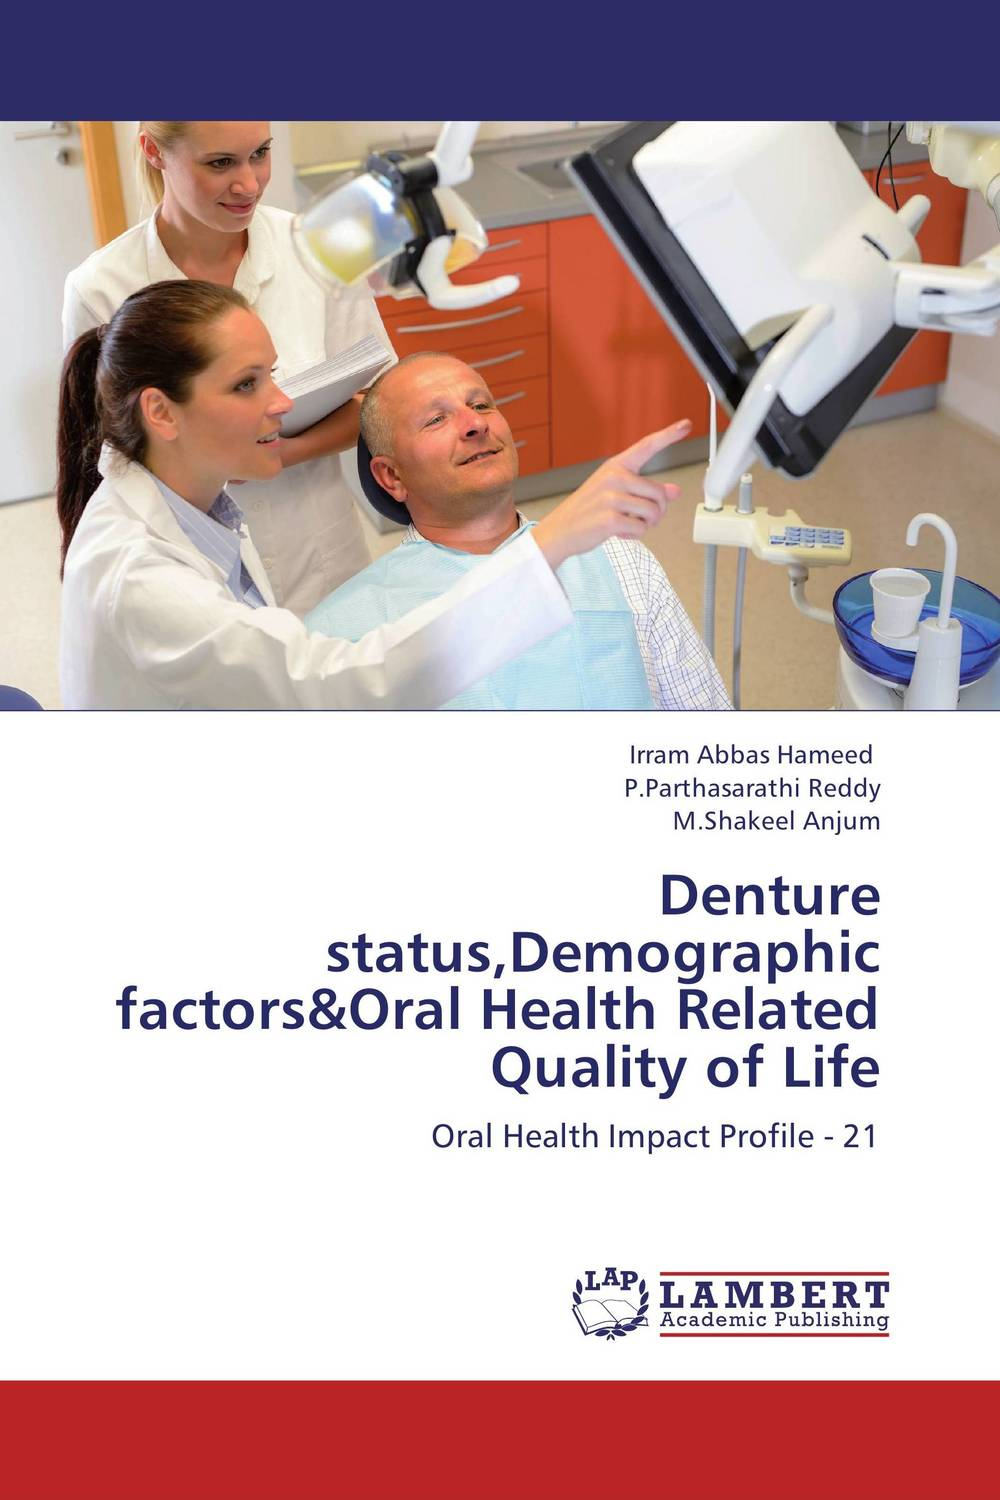 Denture status,Demographic factors&Oral Health Related Quality of Life ladusingh rajpurohit nishant mehta and rahul anand oral health a mirror to quality of life